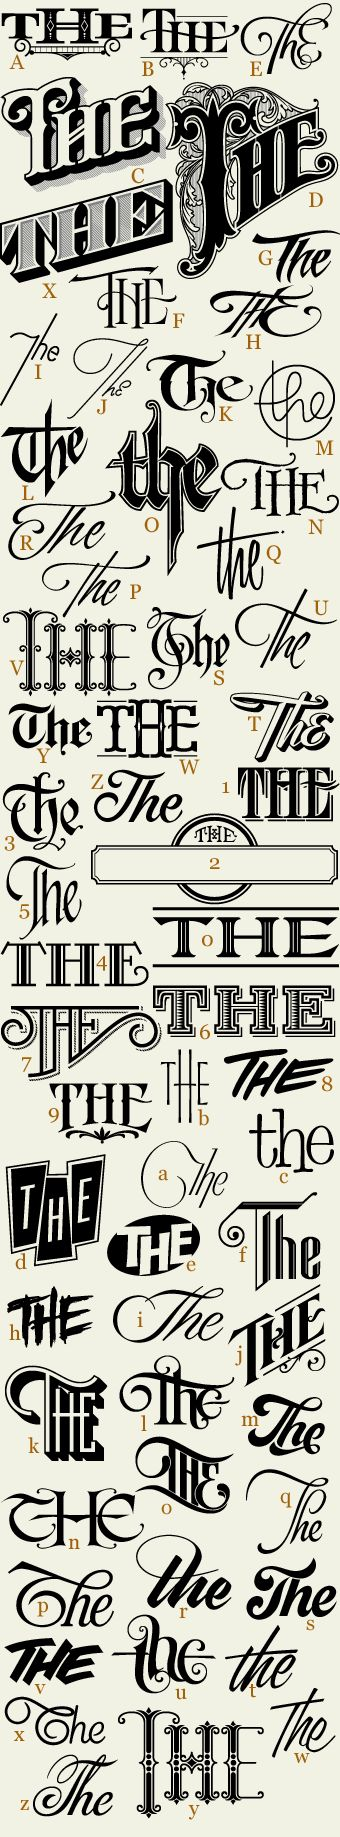 Letterhead Fonts / LHF 62 Thes / 62 Variations of The